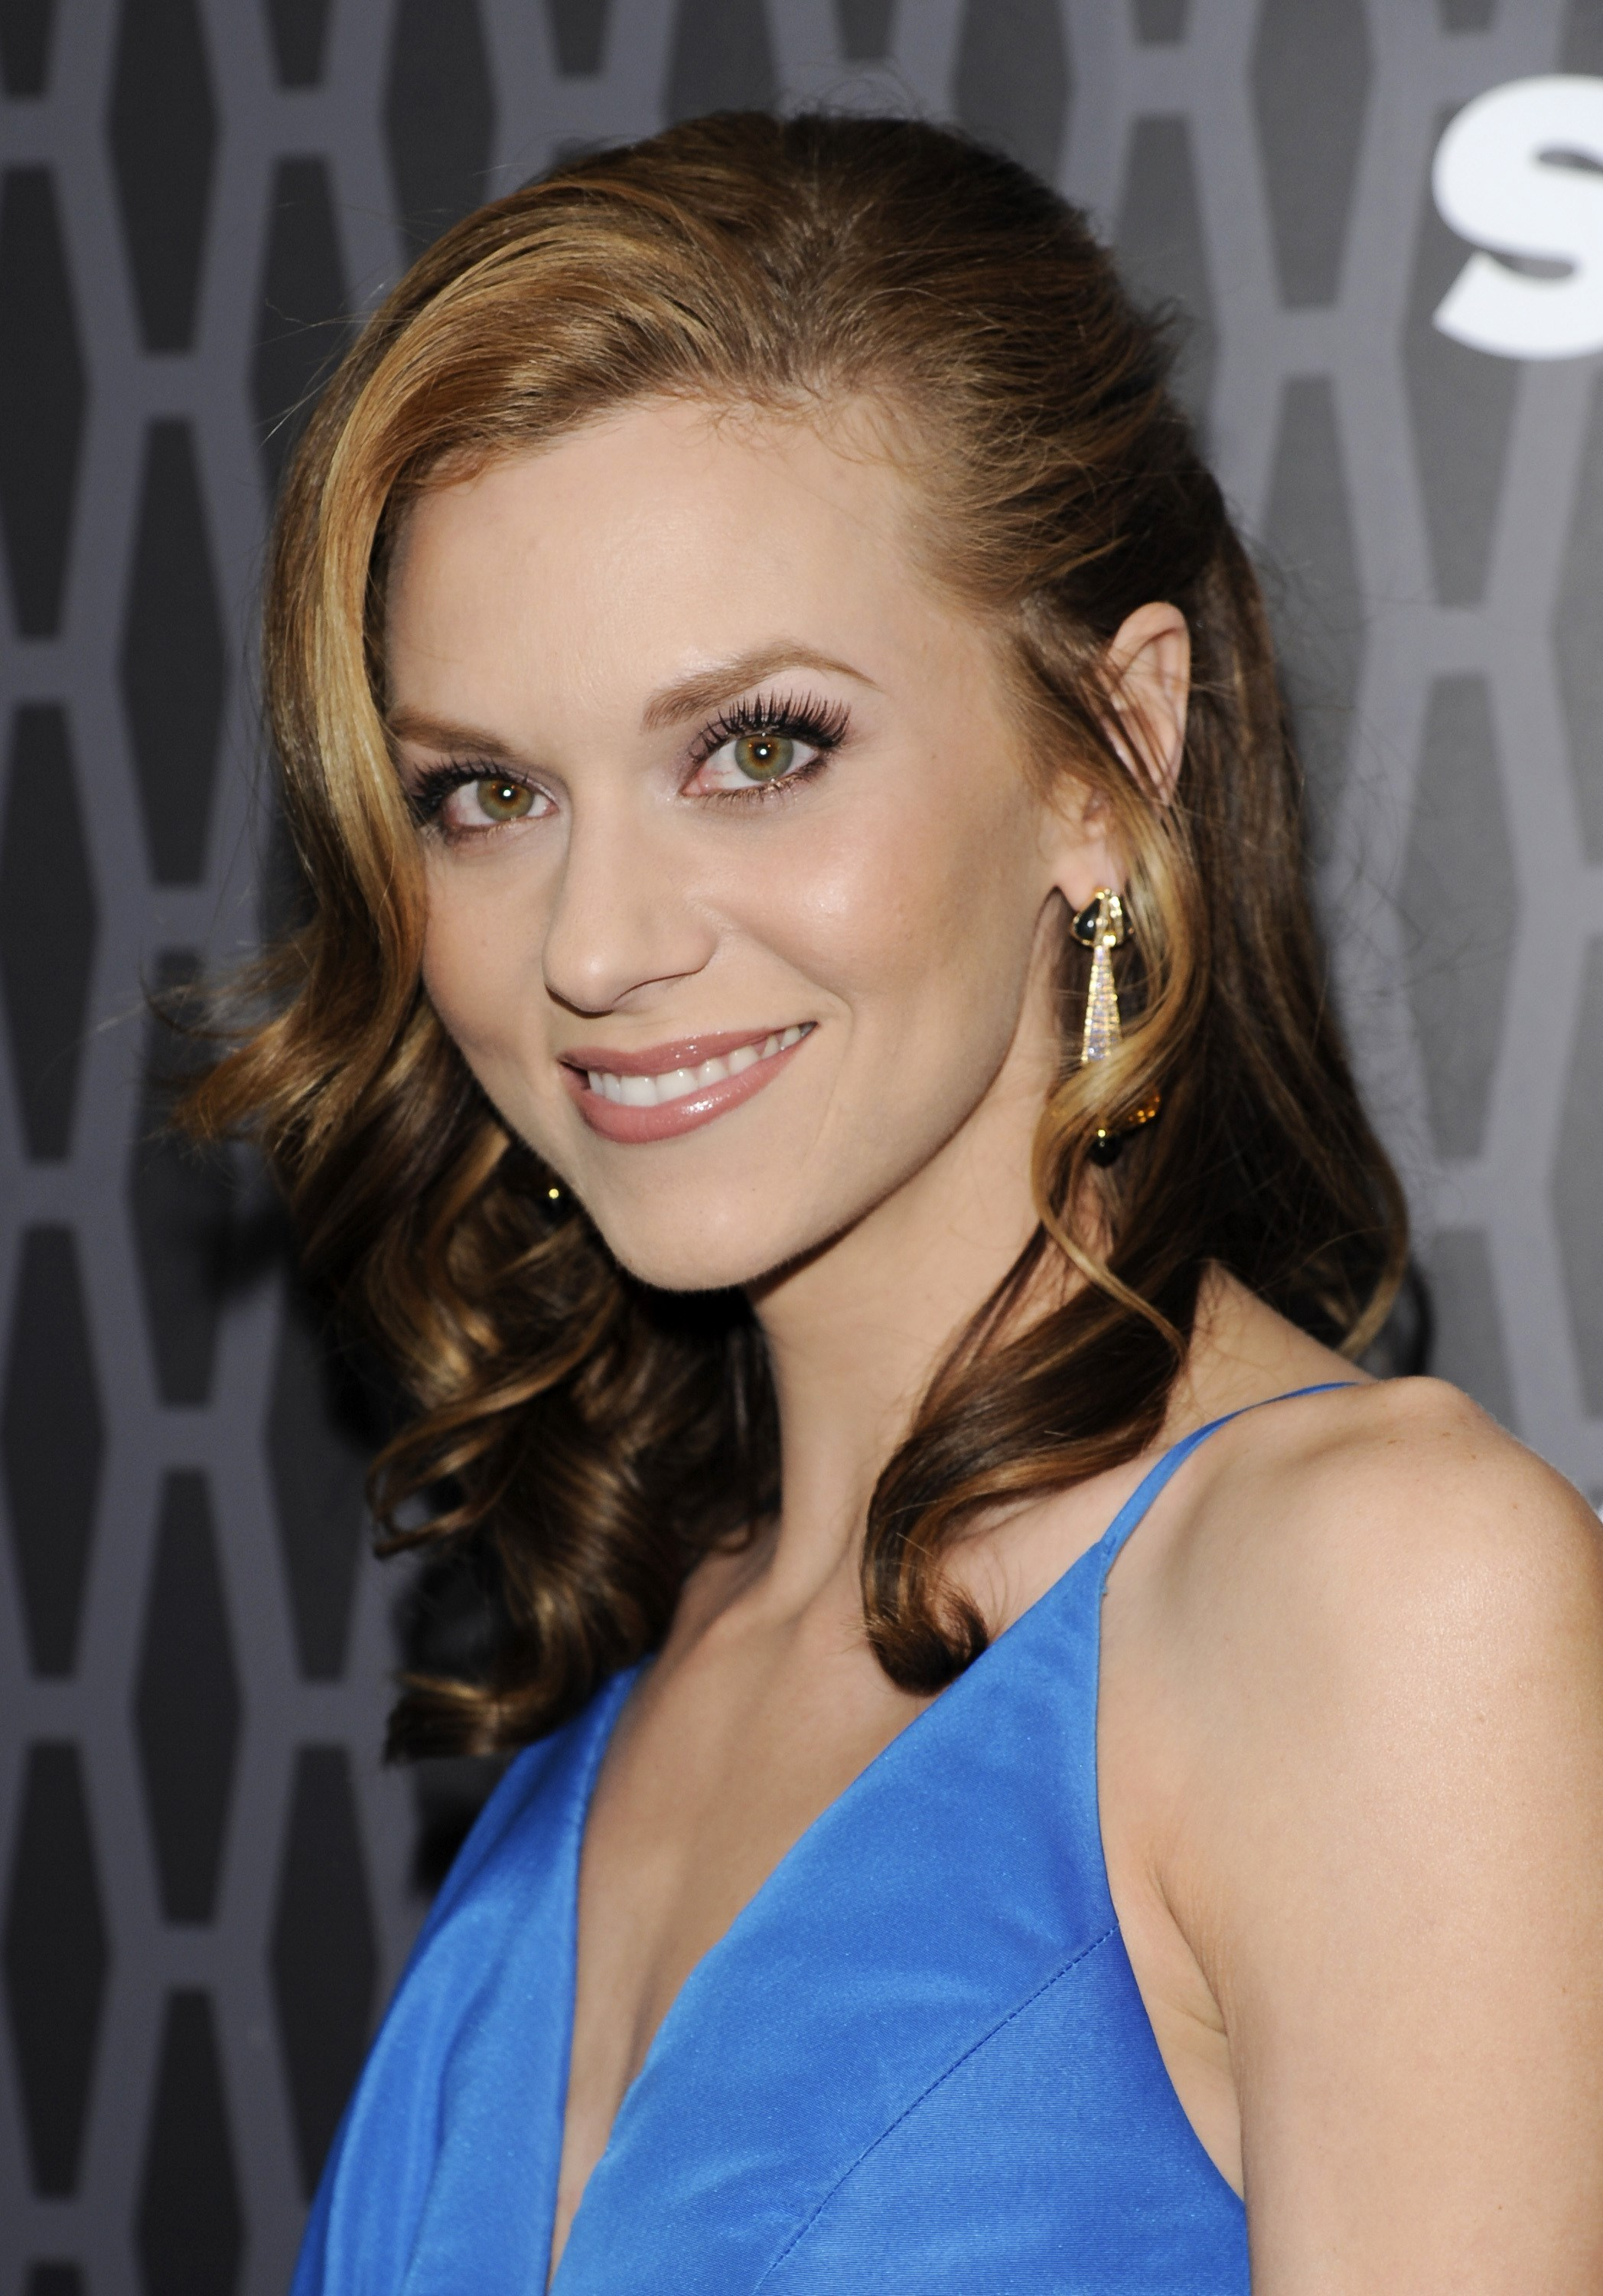 Hilarie Burton | Known people - famous people news and ... Hilarie Burton